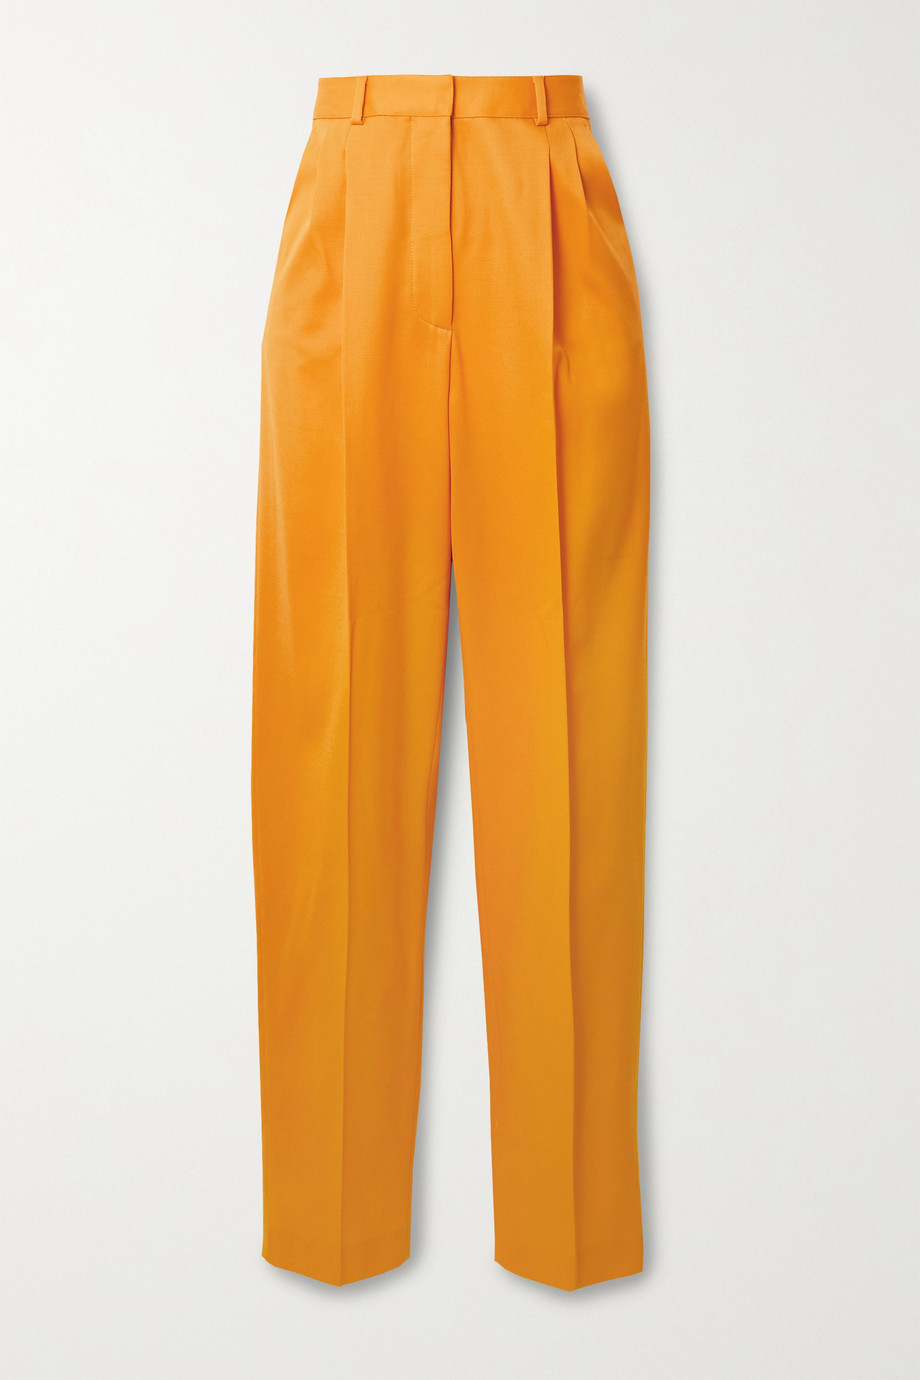 Altuzarra Cosmos pleated wool-blend twill straight-leg pants